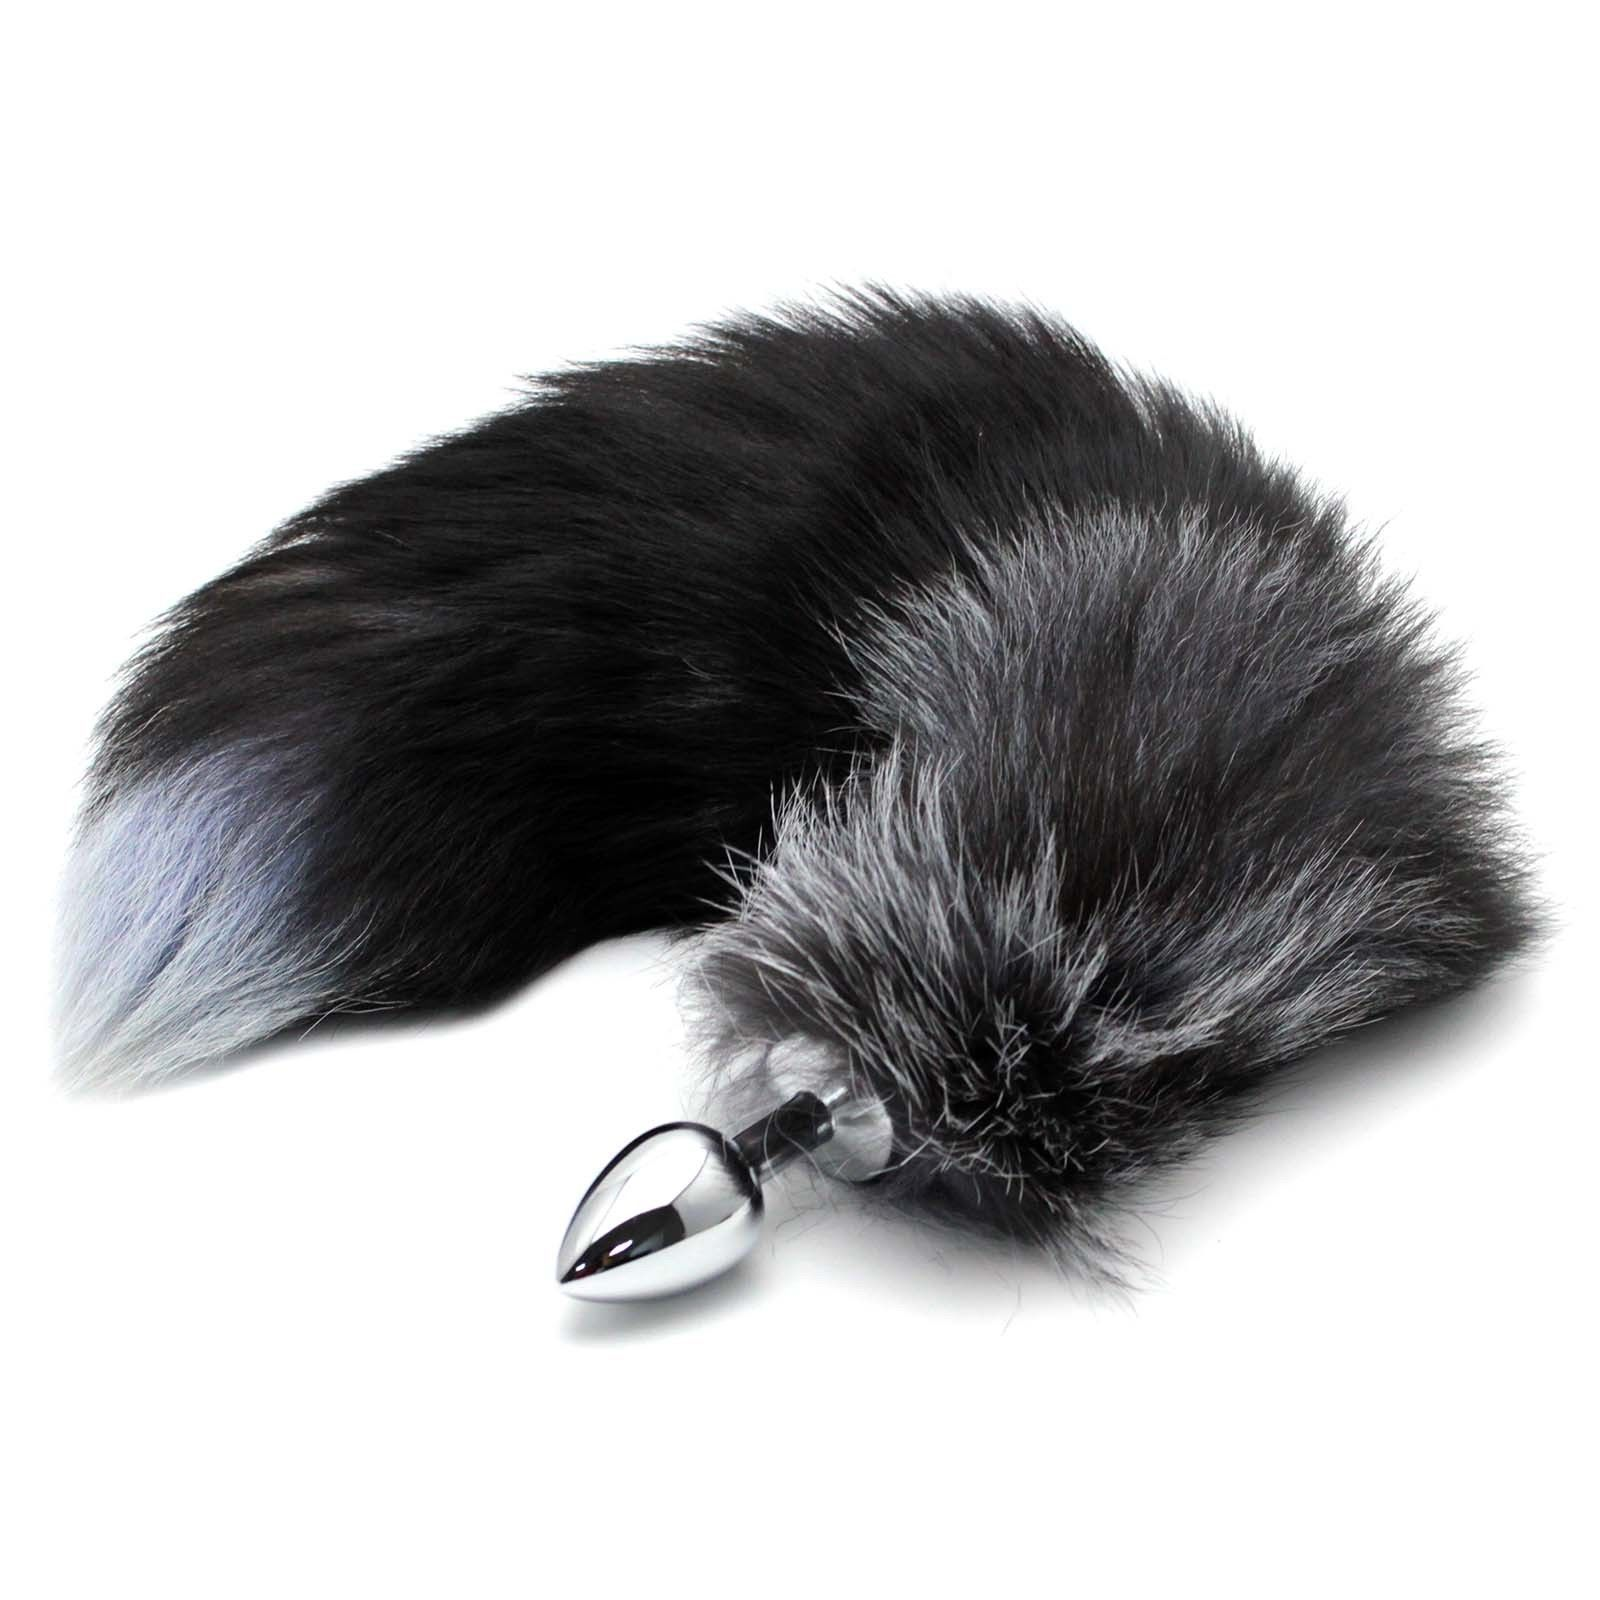 Funny False Fox Tail With Stainless Steel Plug Romance Black and Silver Game Toy